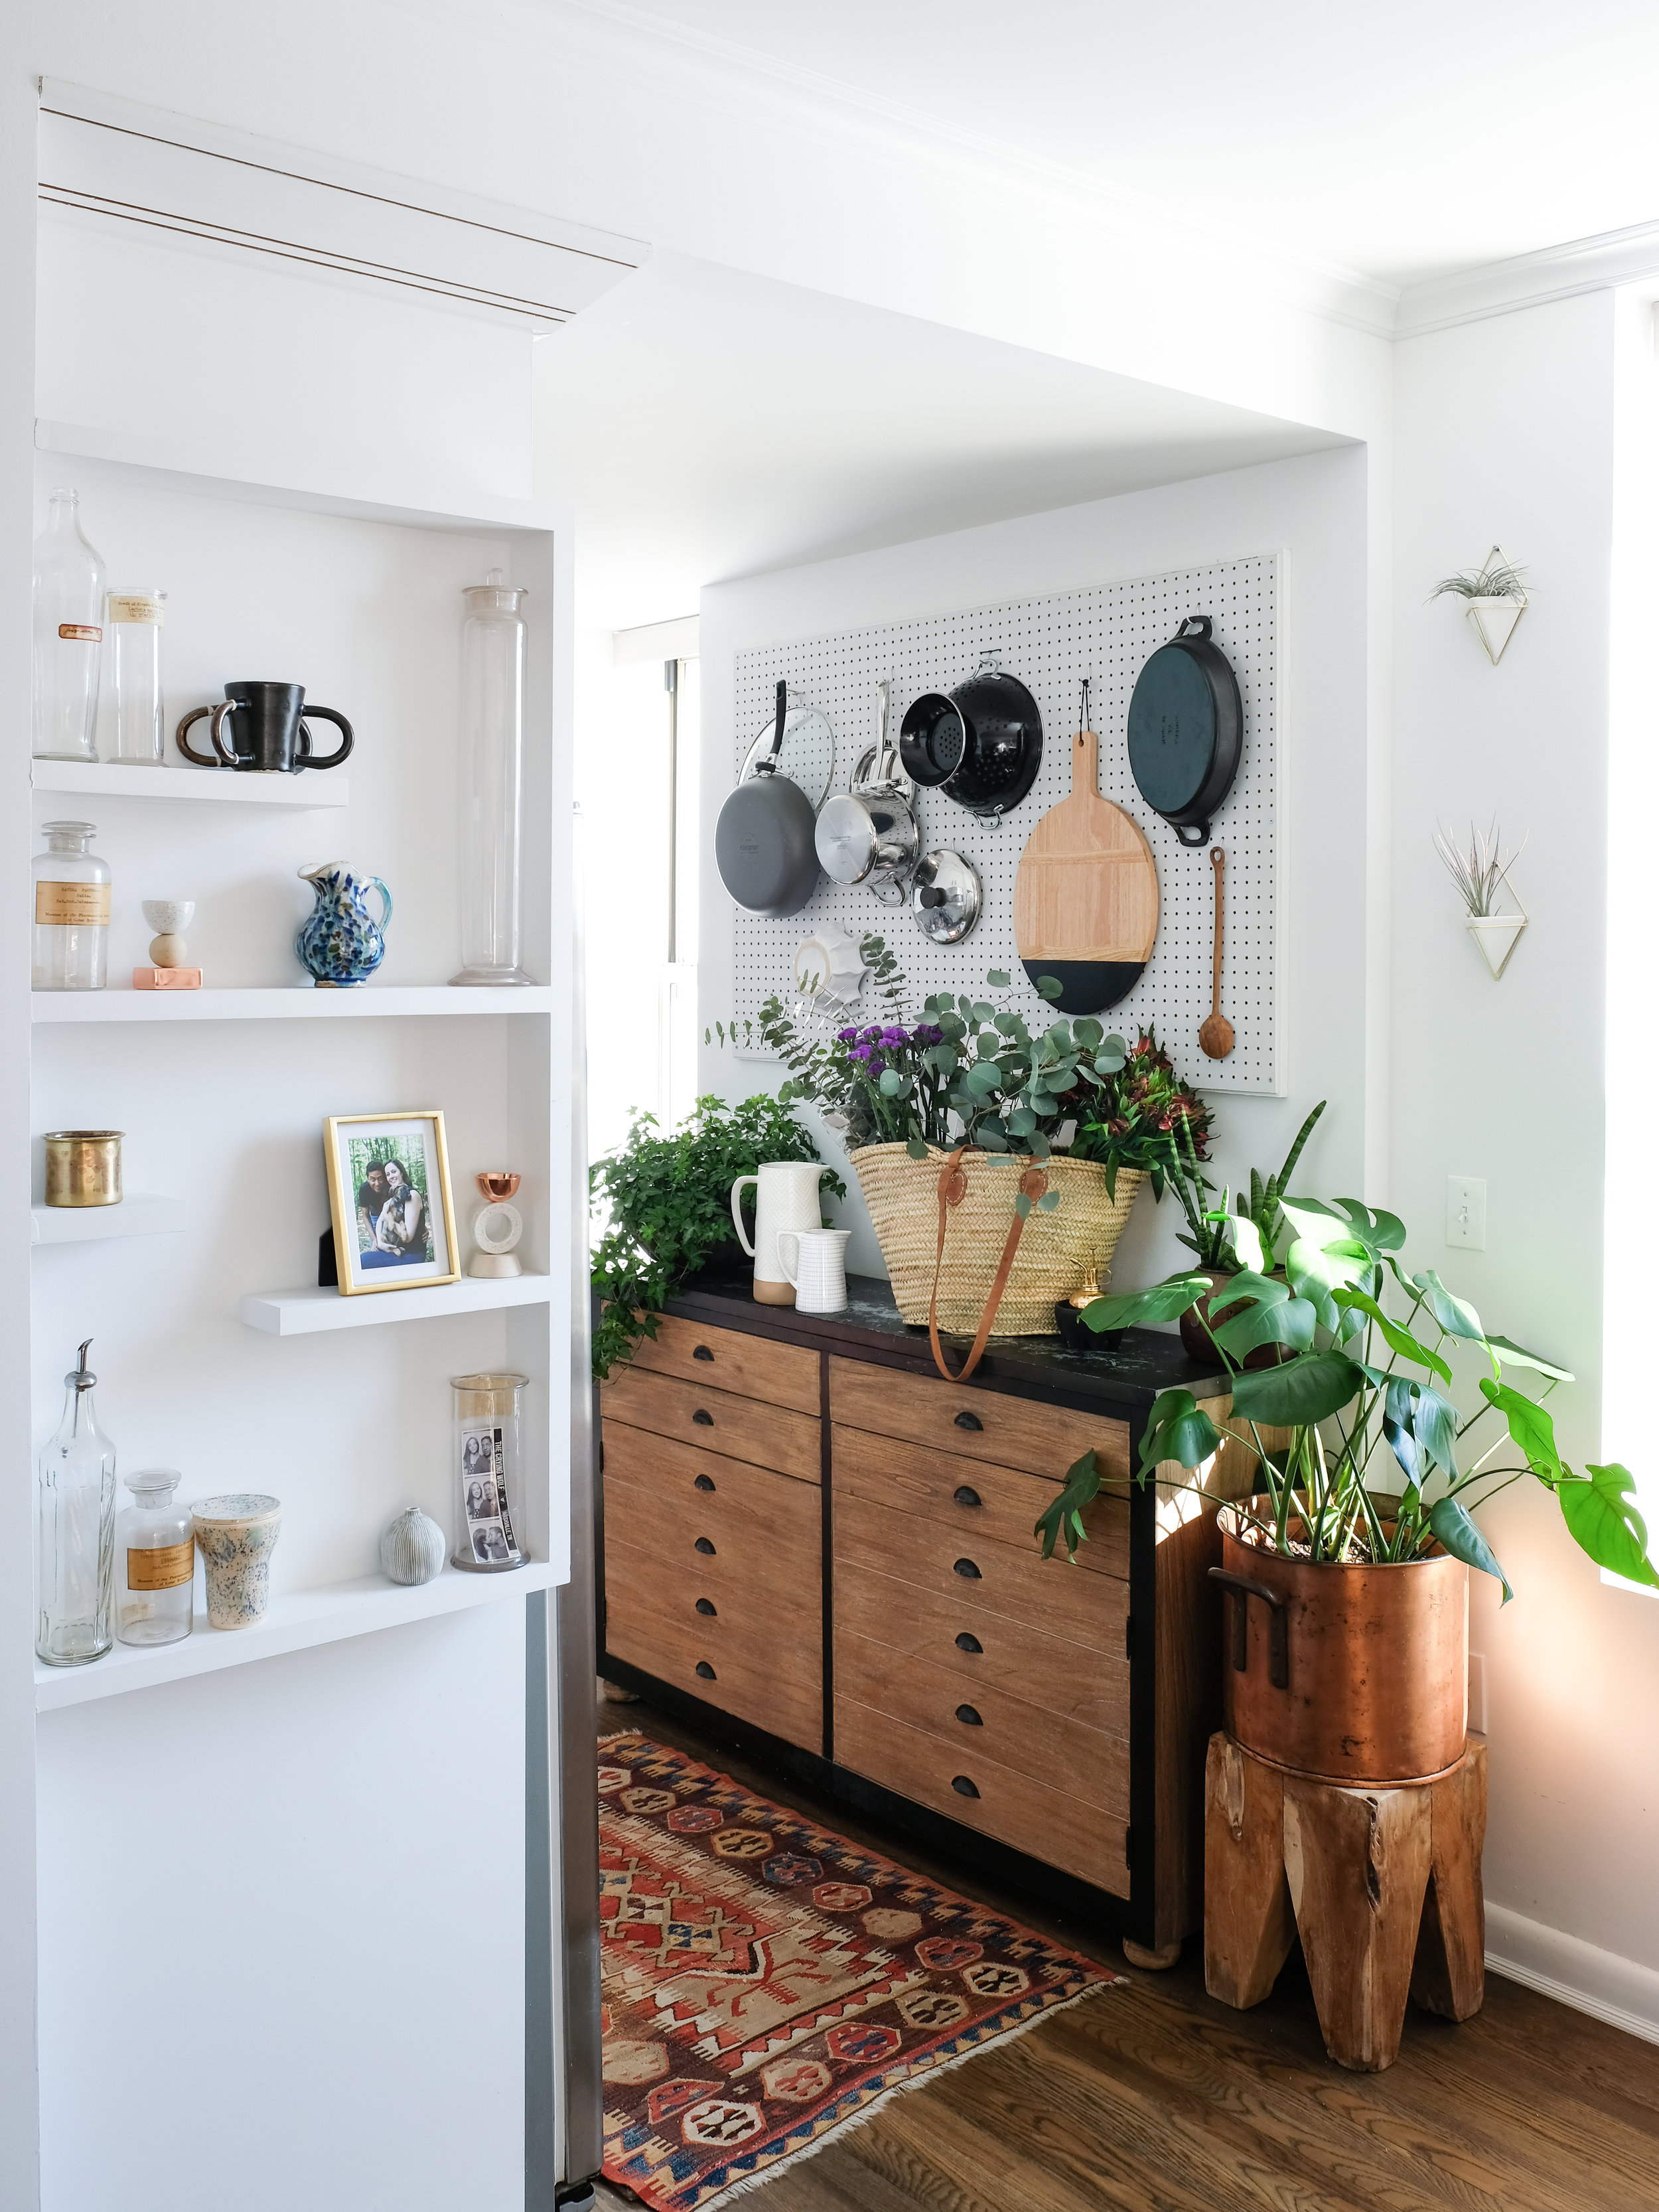 I not only decorate with plants, but lots of greenery as well!